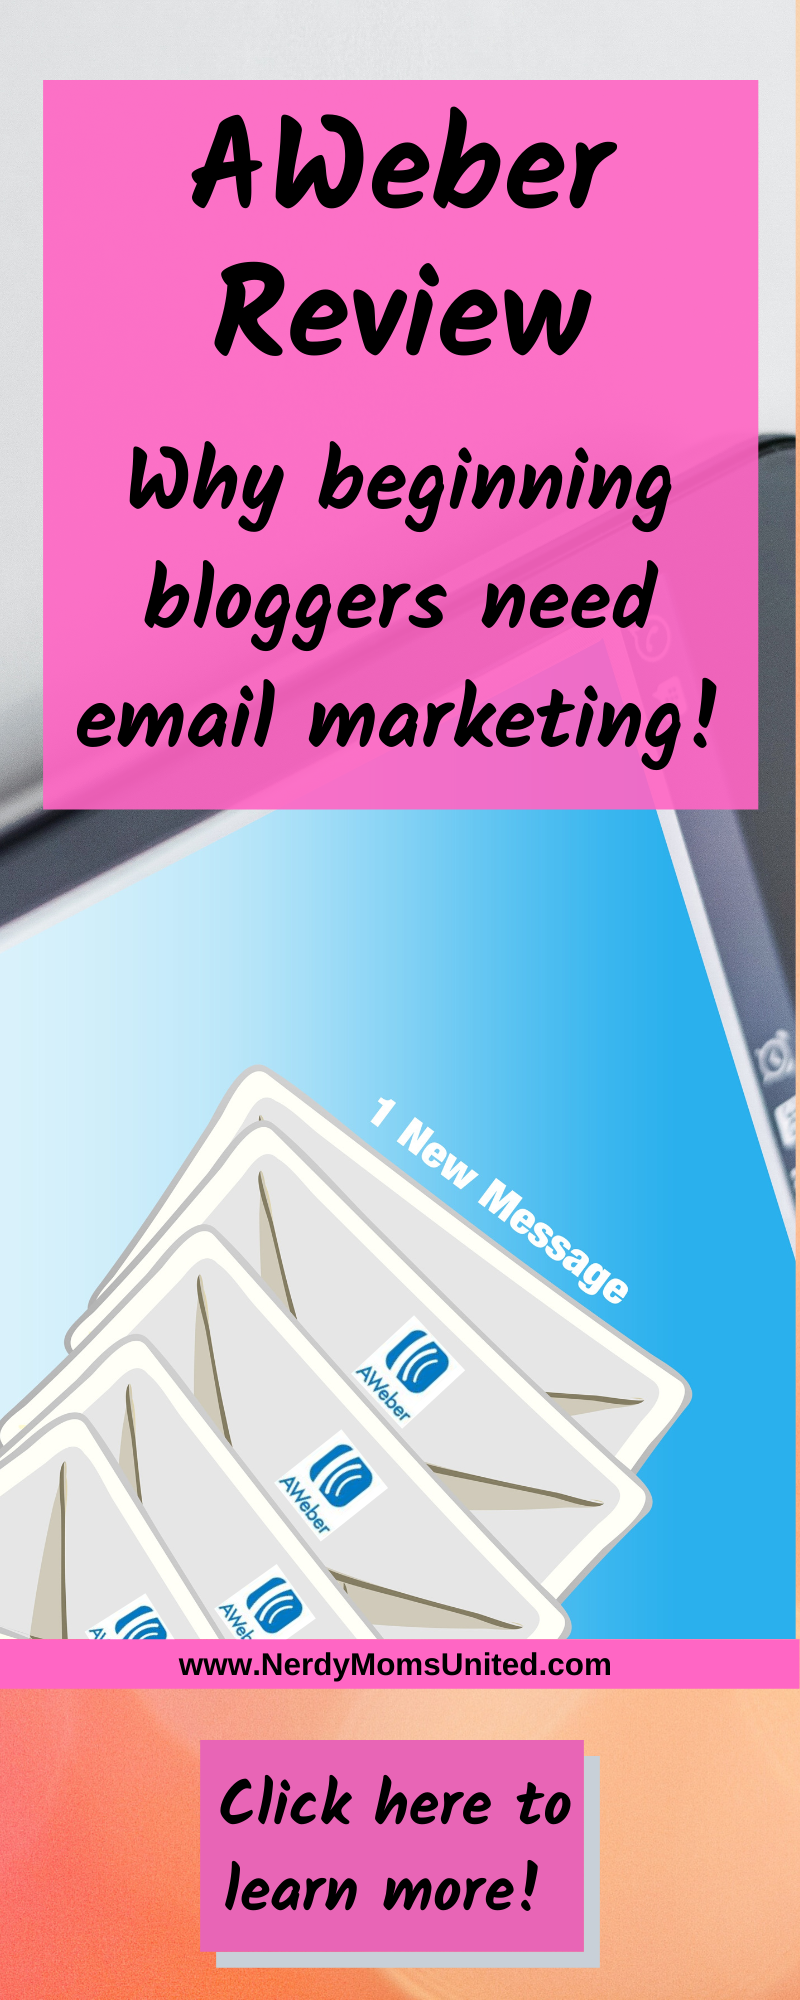 Buy Aweber Email Marketing Online Voucher Code 100 Off